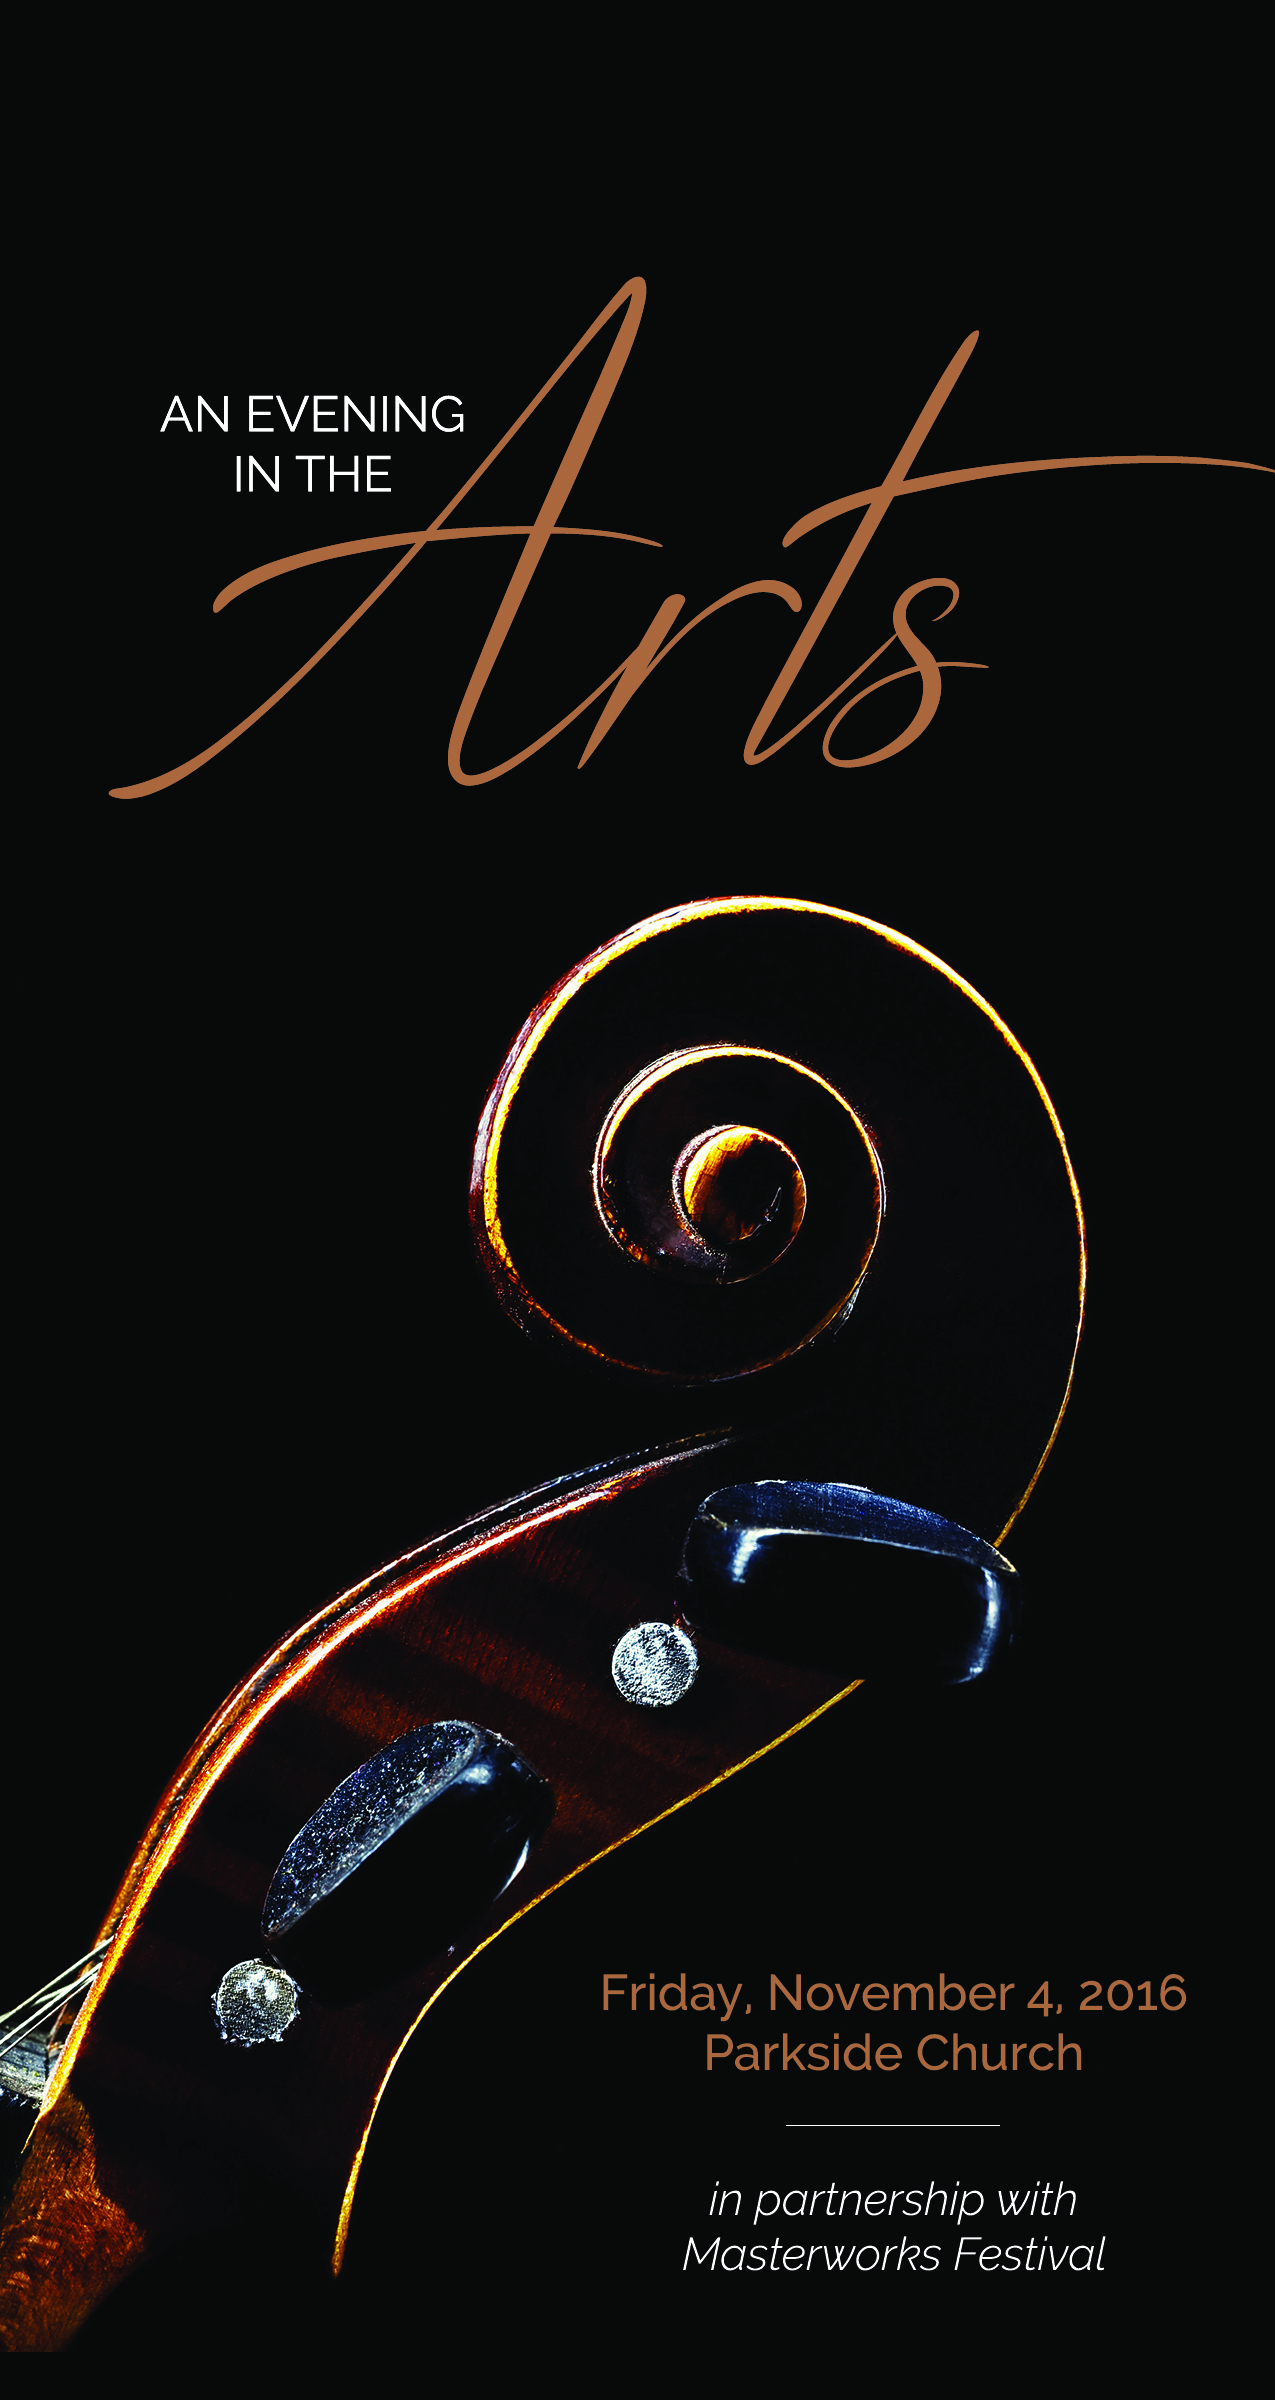 Evening in the Arts Cover.jpg